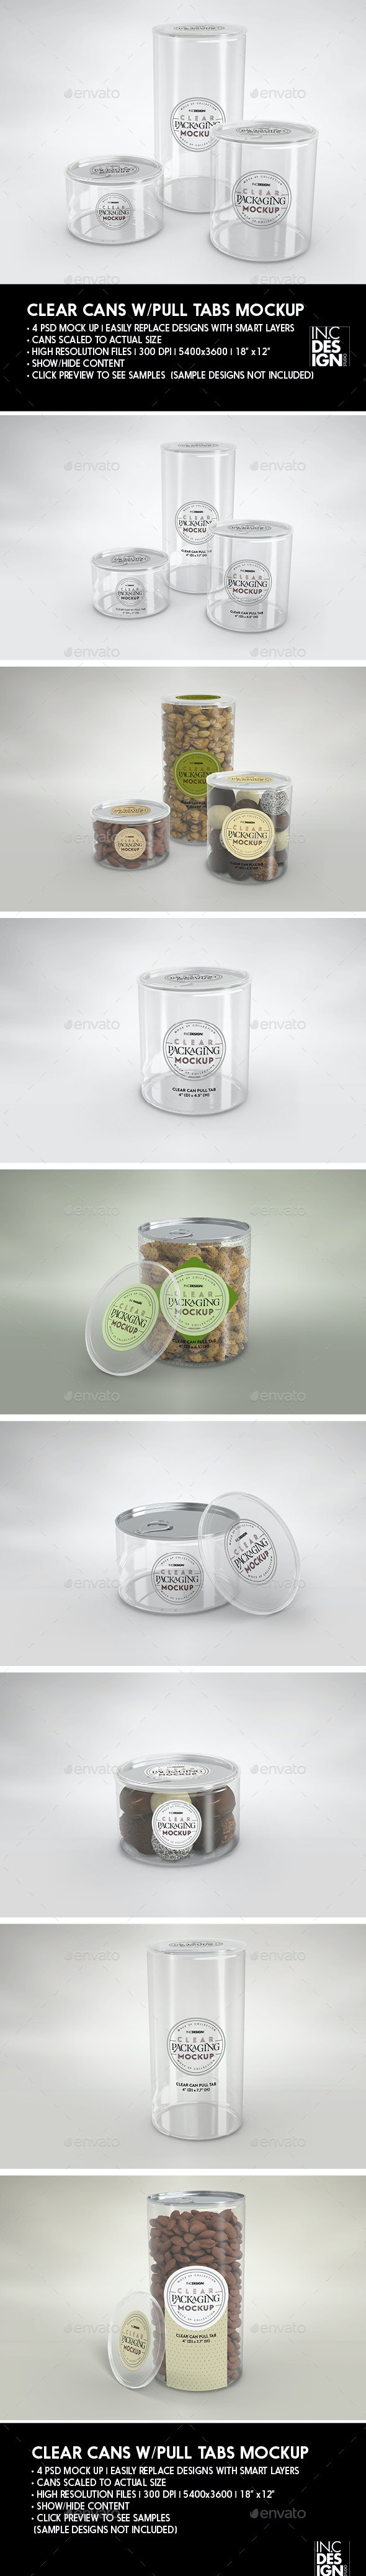 Clear Cans with Pull tabs and Clear Lids Packaging Mockup - Food and Drink Packaging